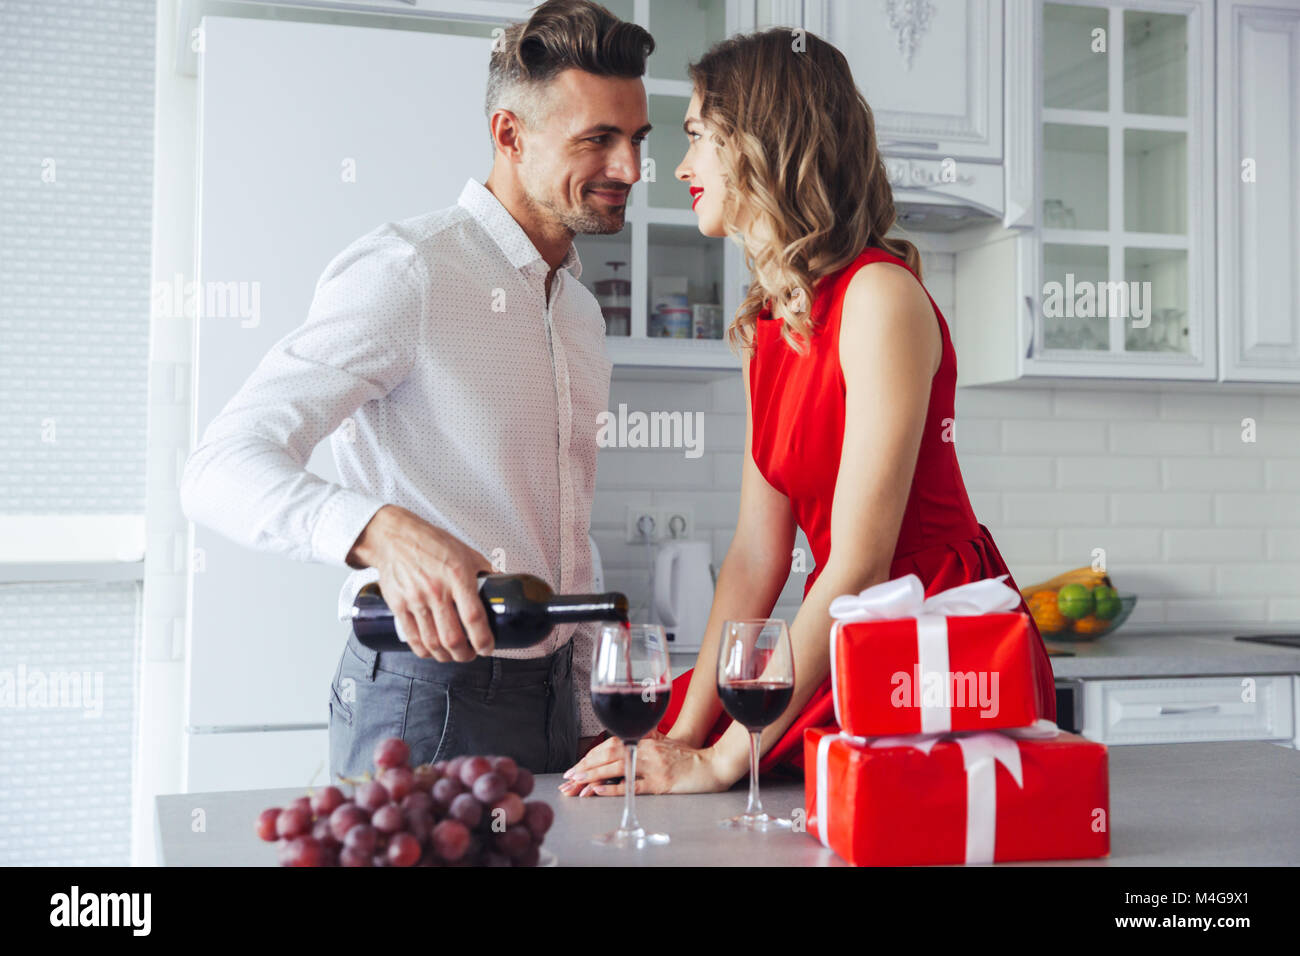 Young man in white shirt pouring wine into glasses and looking at his gorgeous woman in red dress on valentines - Stock Image